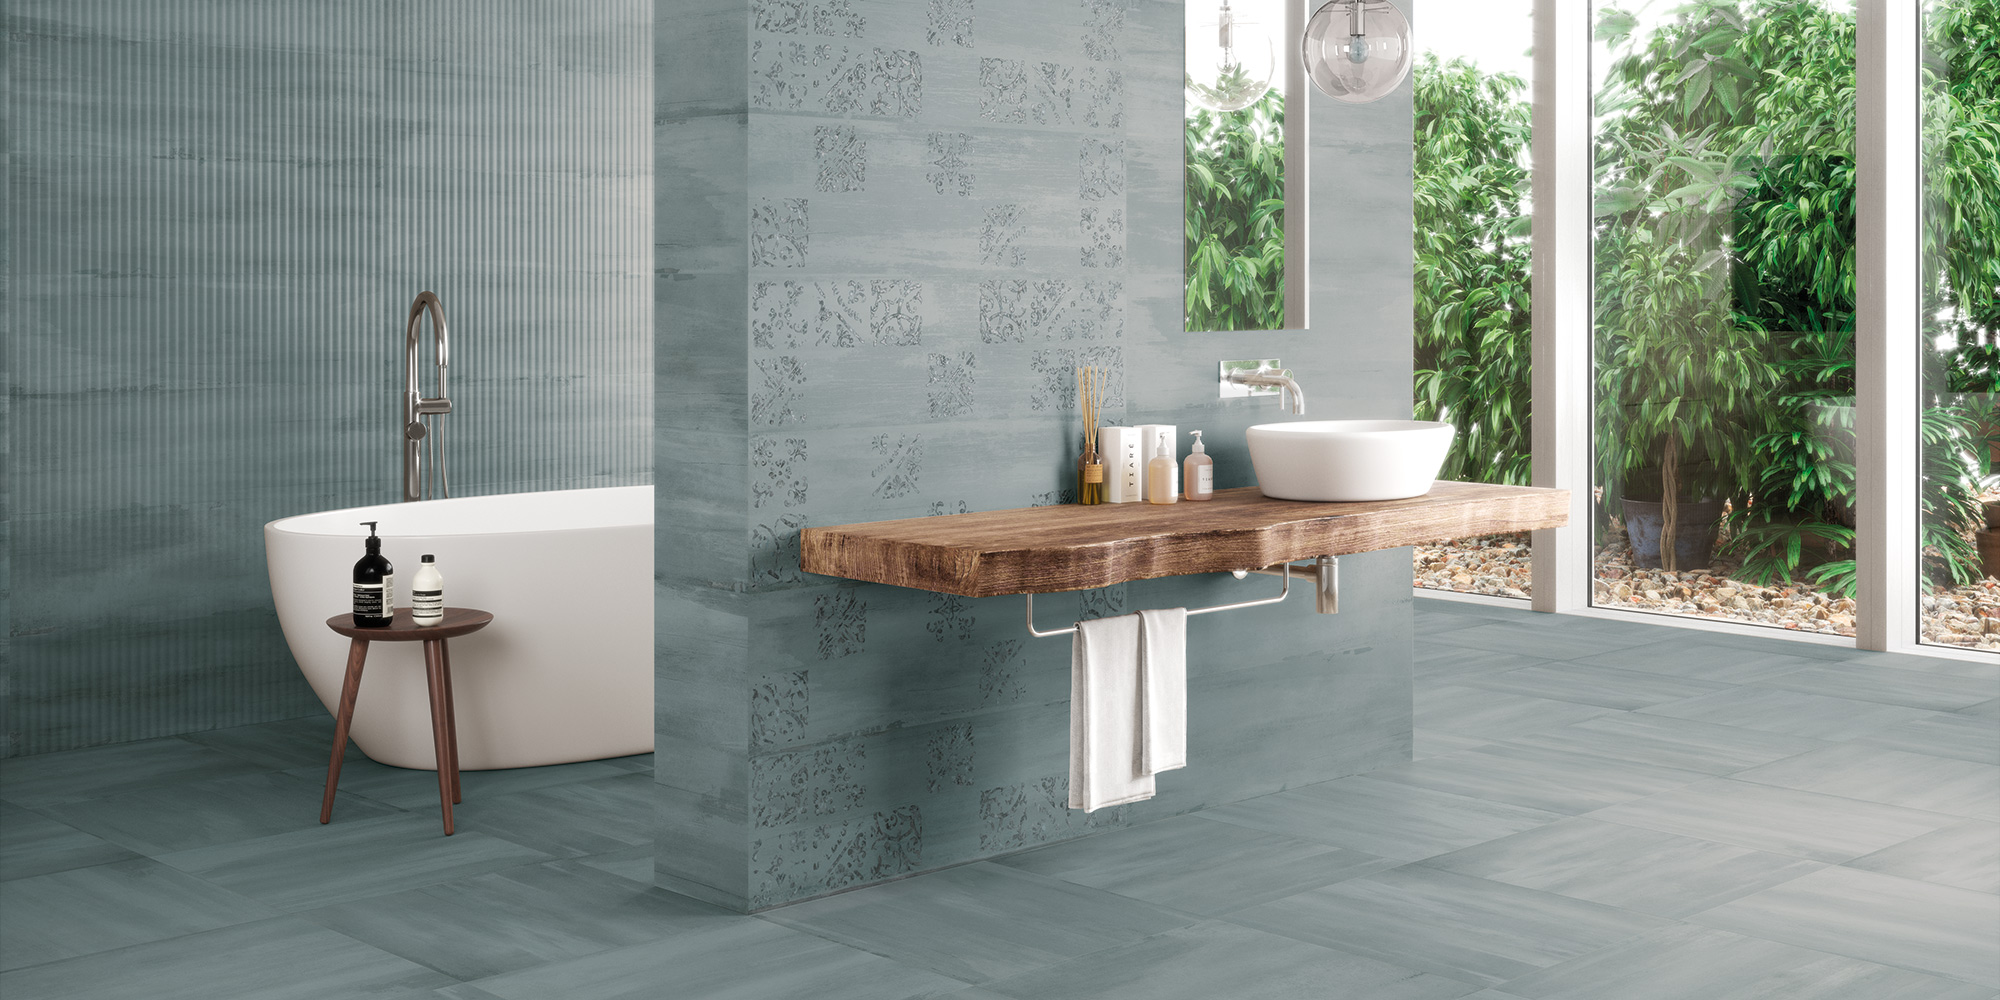 Sospiro 29x100 / 20x20. Monocolour concrete wall and floor tiles.